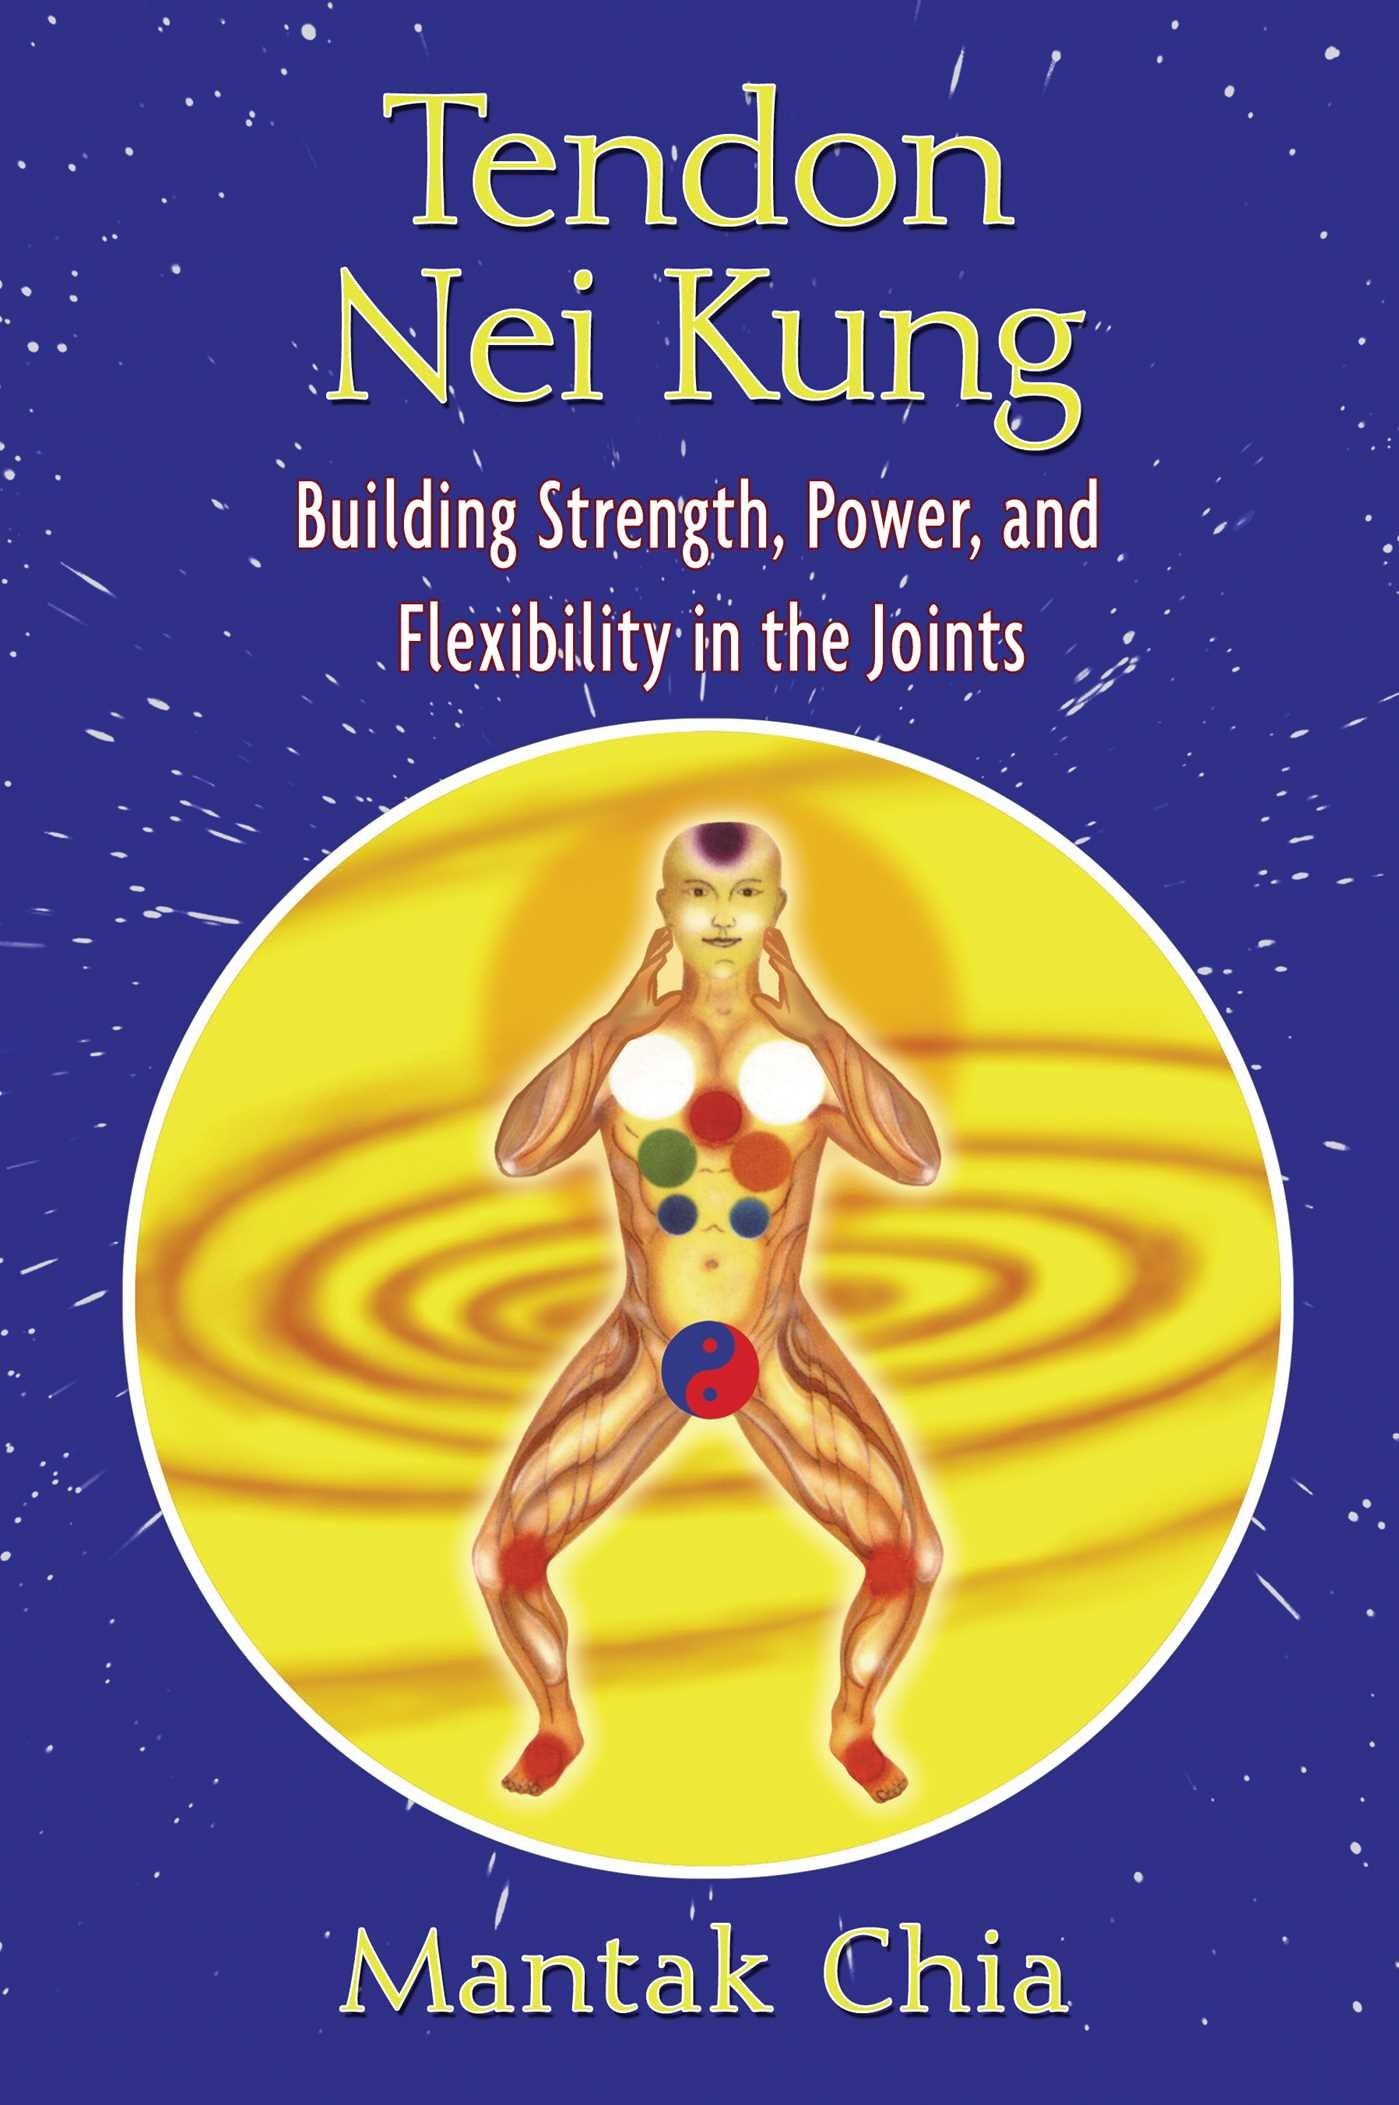 Download Tendon Nei Kung: Building Strength, Power, and Flexibility in the Joints (English Edition)